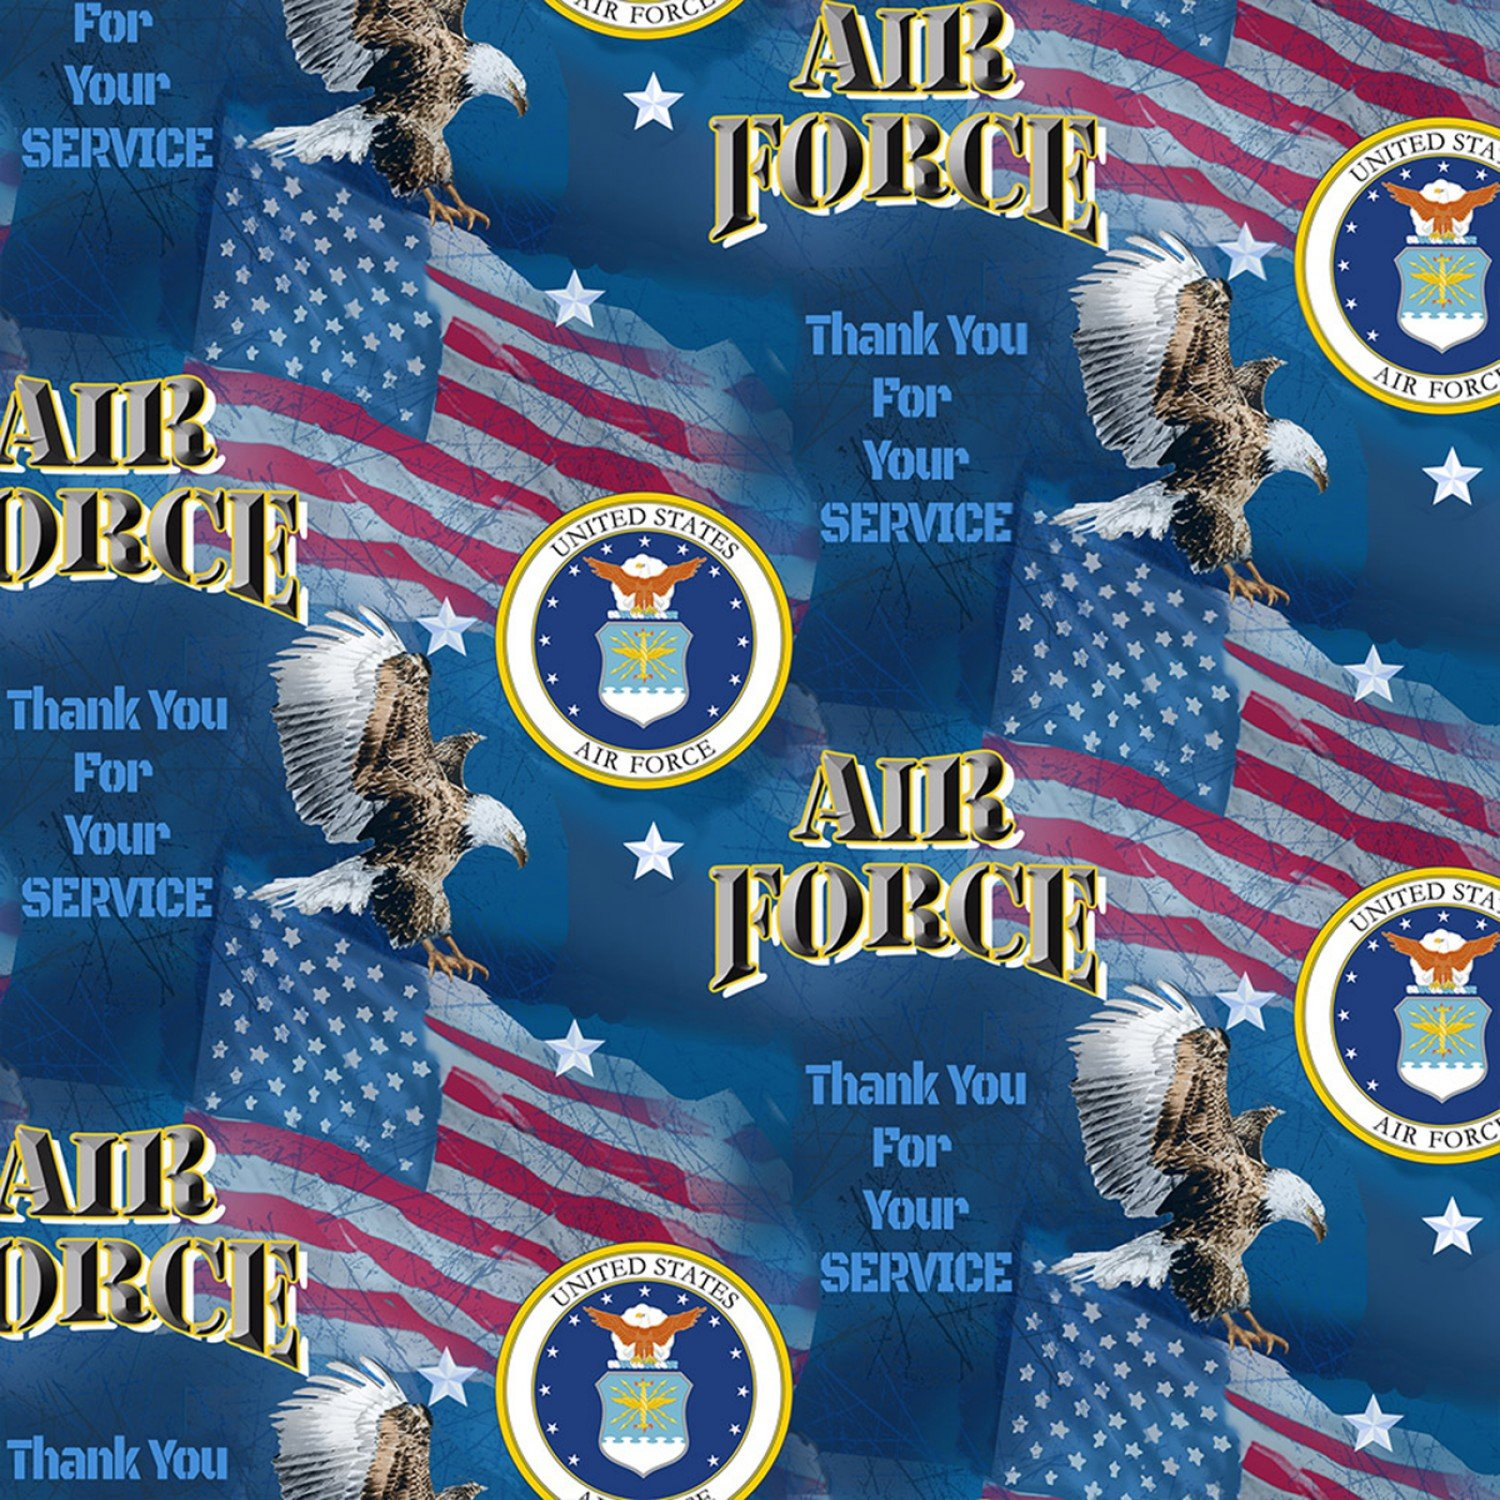 Sykel-Military Cotton 1253 AF Air Force Military Flags